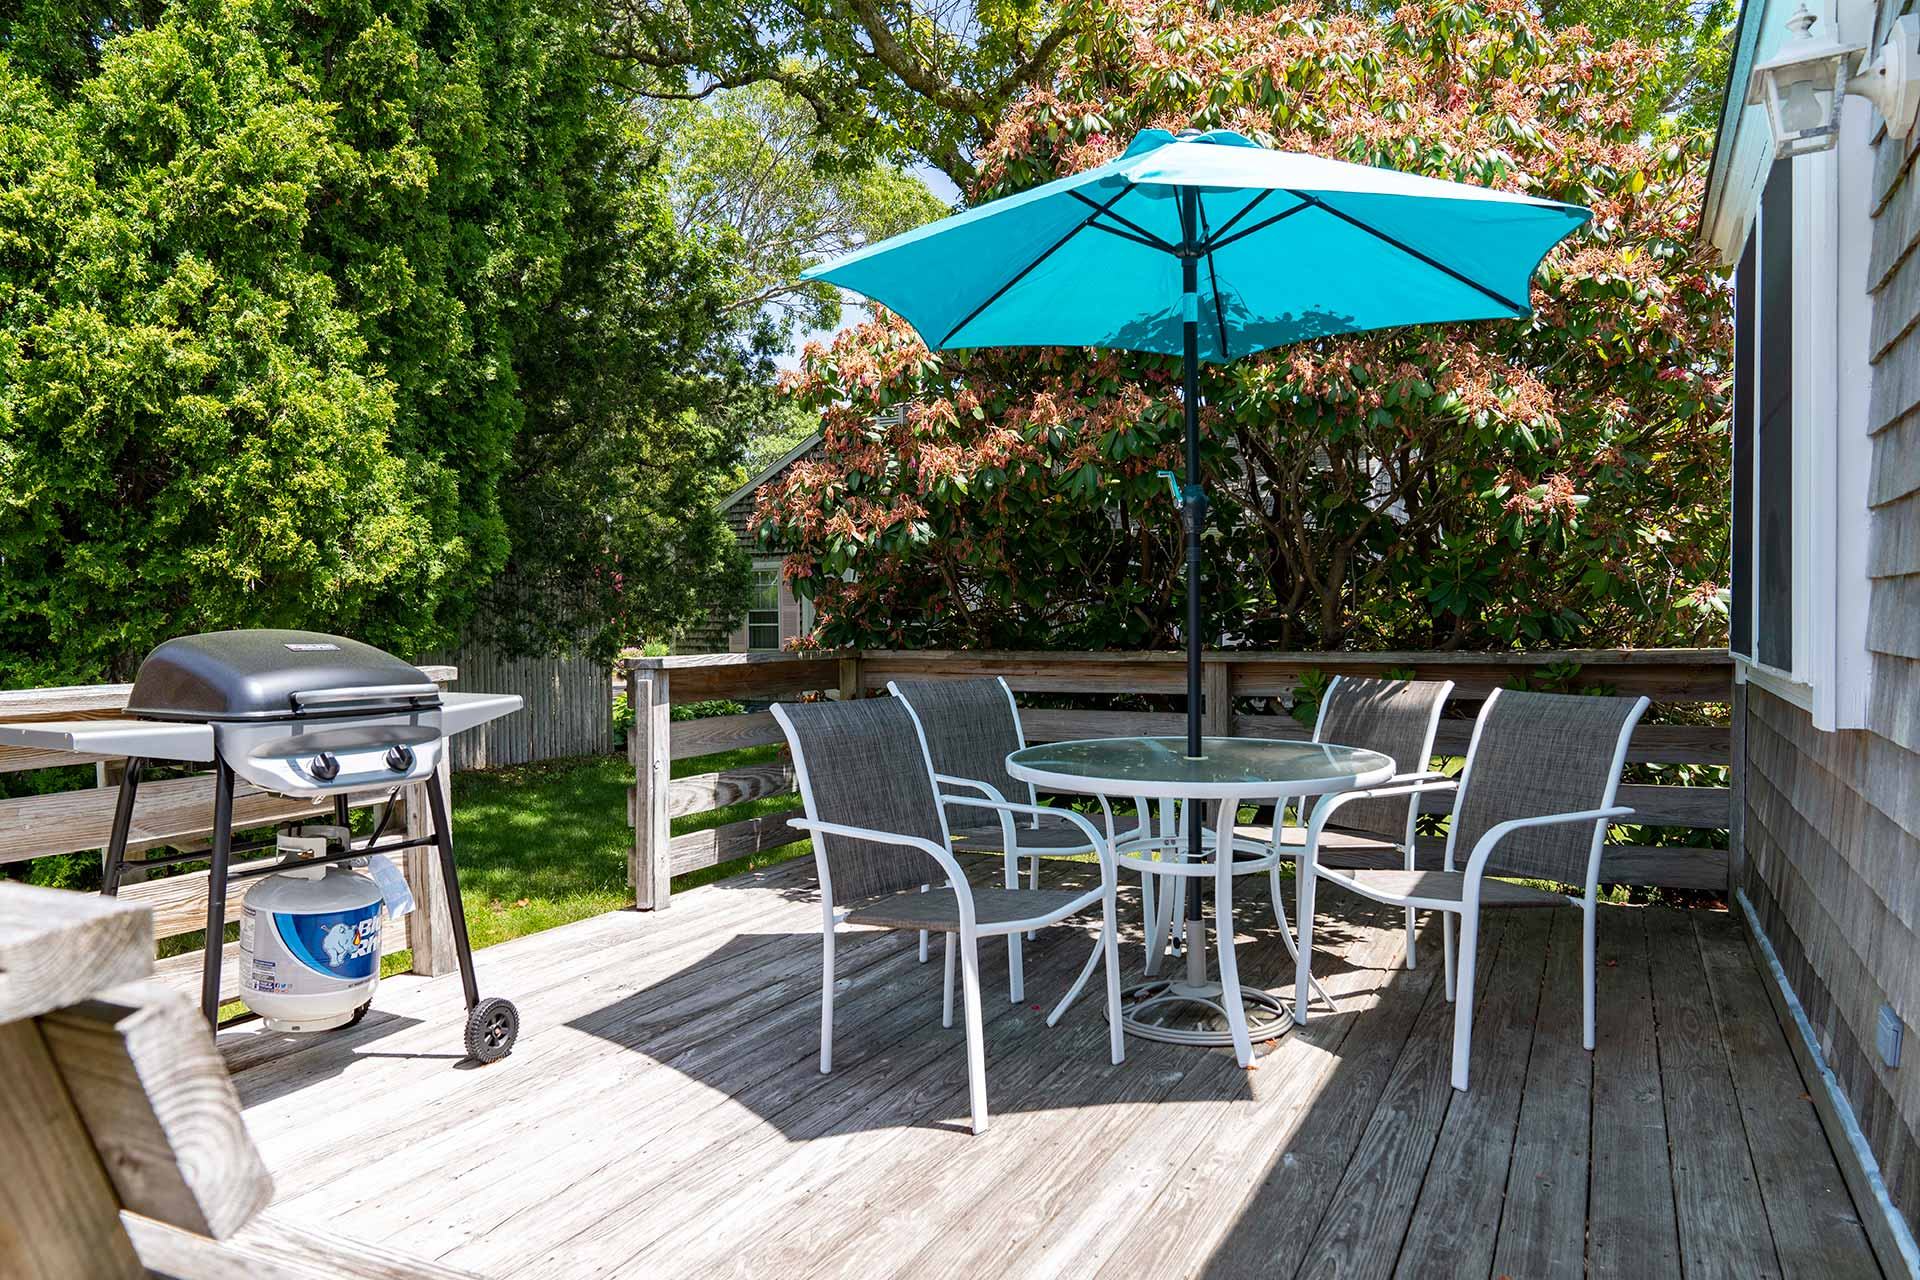 Cape Cod Vacation Rental Relaxing Patio With BBQ